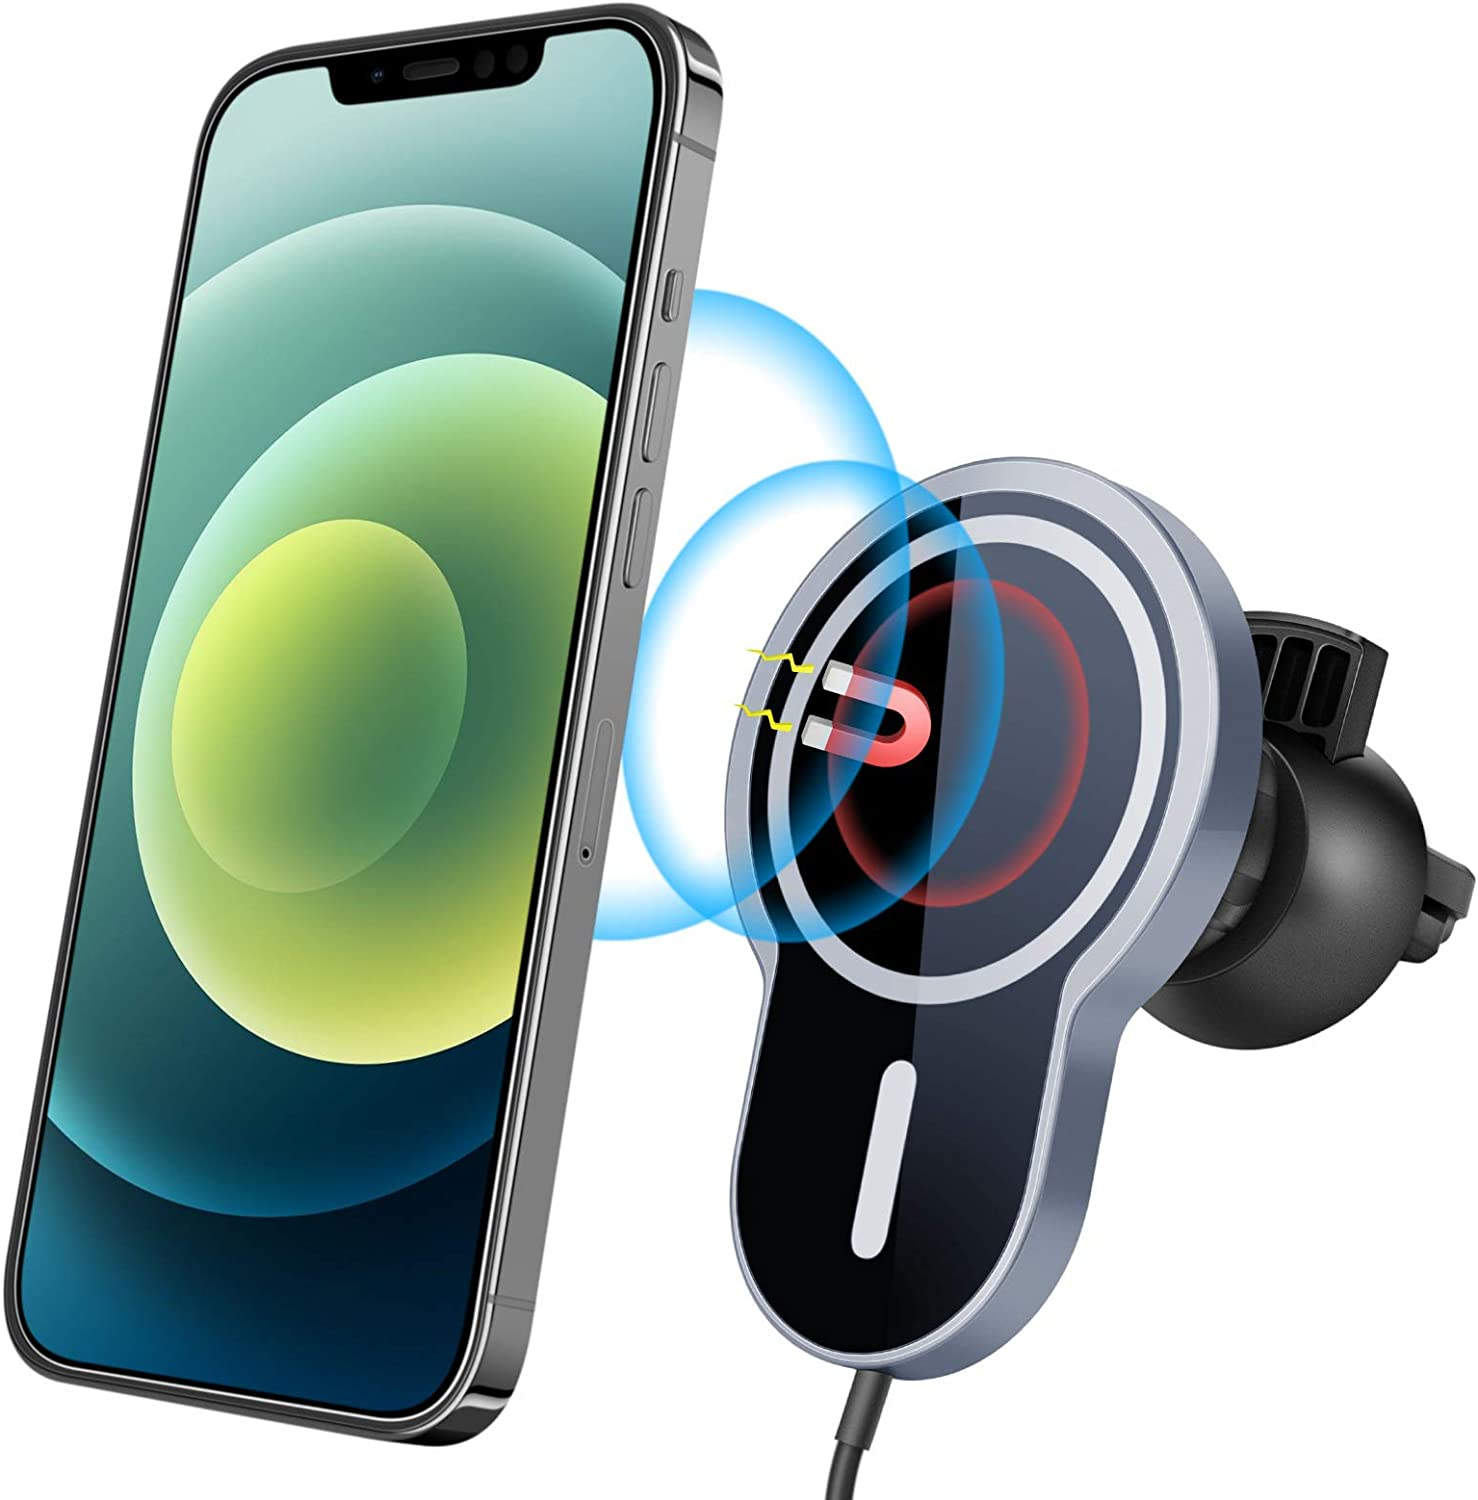 【2021 Upgraded】 Magnetic Wireless Car Charger for Mag-Safe Case//iPhone 12//12 Pro// 12 Pro Max// 12 Mini with QC3.0 Adapter 15W// 10W// 7.5W Fast Wireless Car Charger Mount with Secure Air Vent Clamp